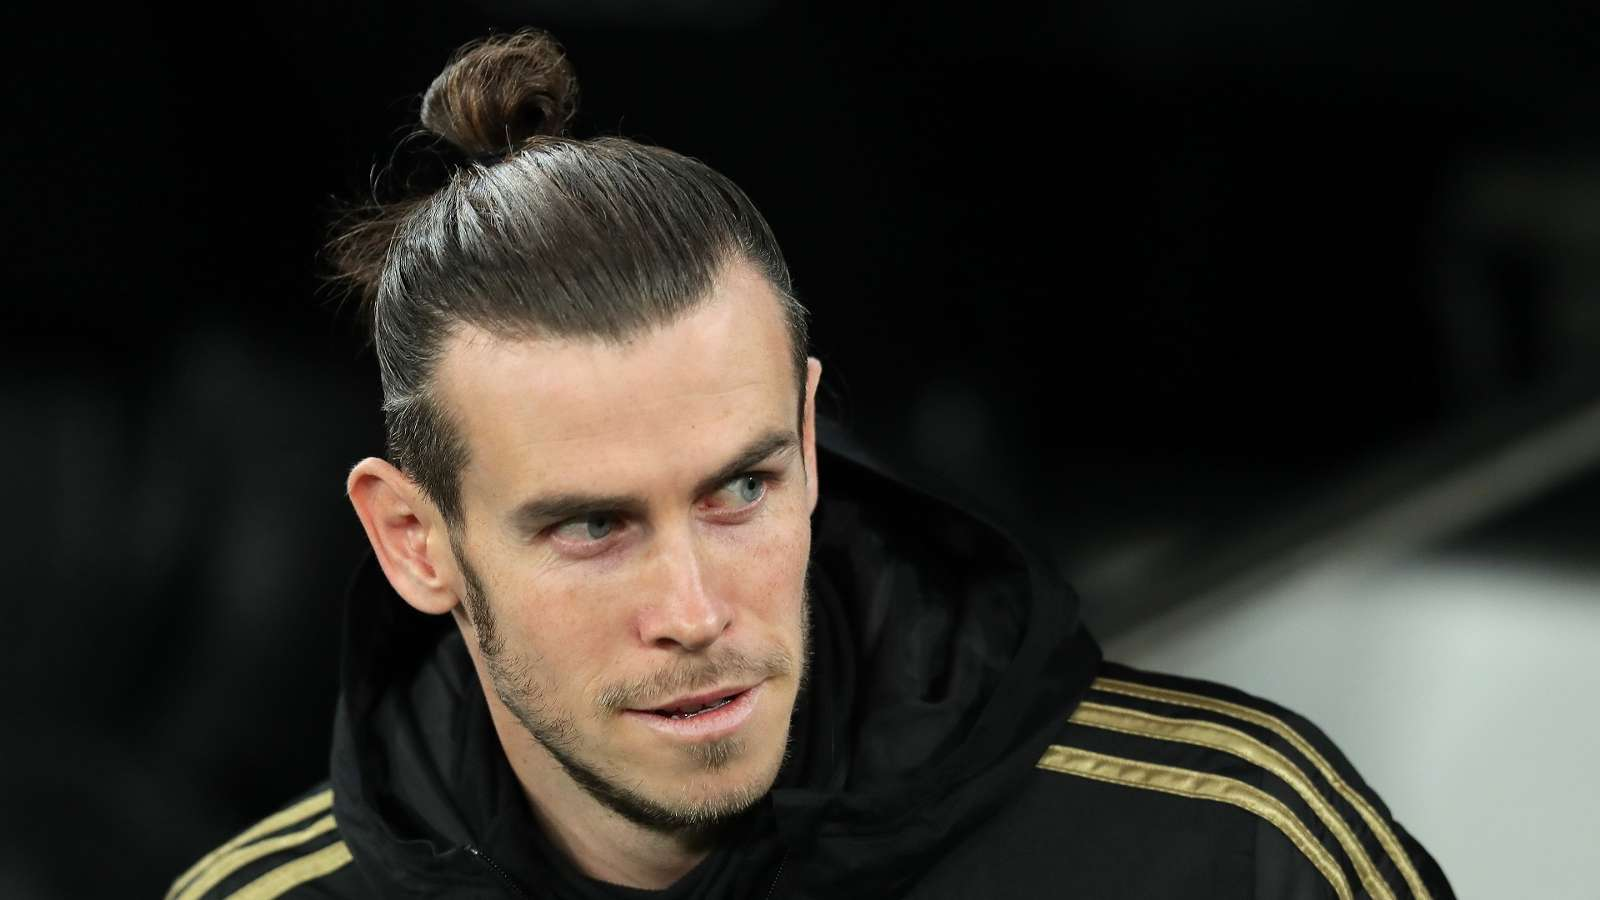 Good news for Gareth Bale and Real Madrid ahead of the Clasico